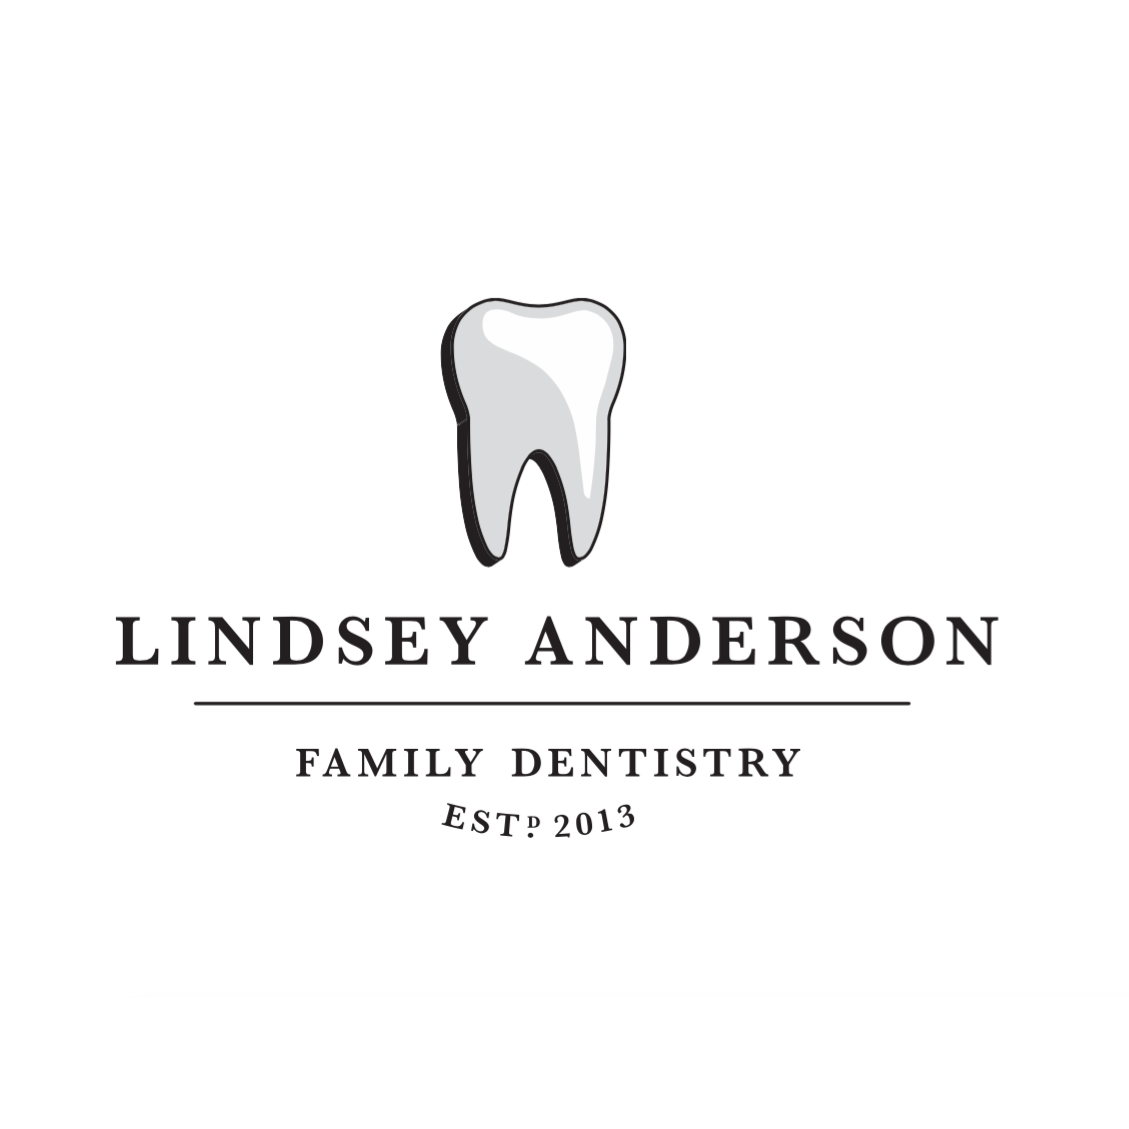 Lindsey Anderson Family Dentistry